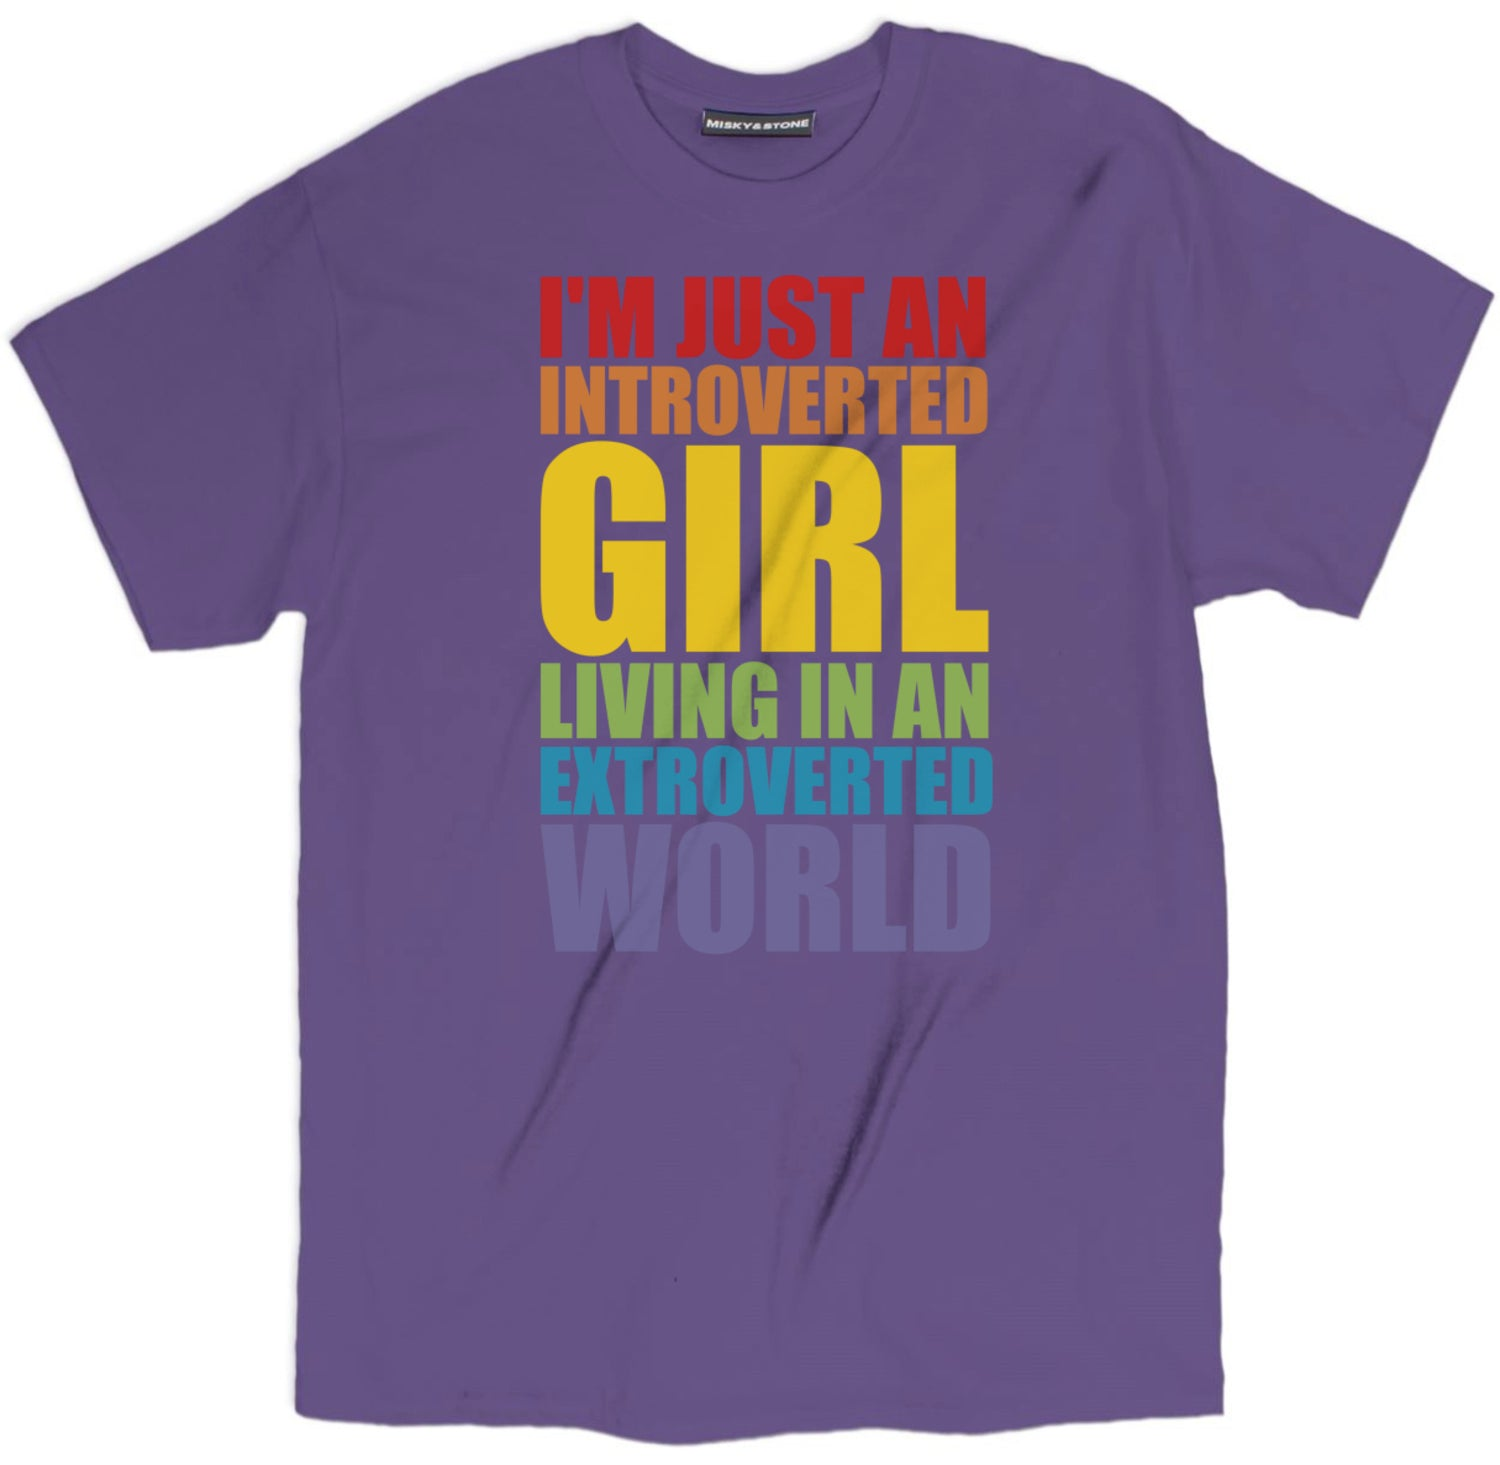 Introverted Girl Shirt